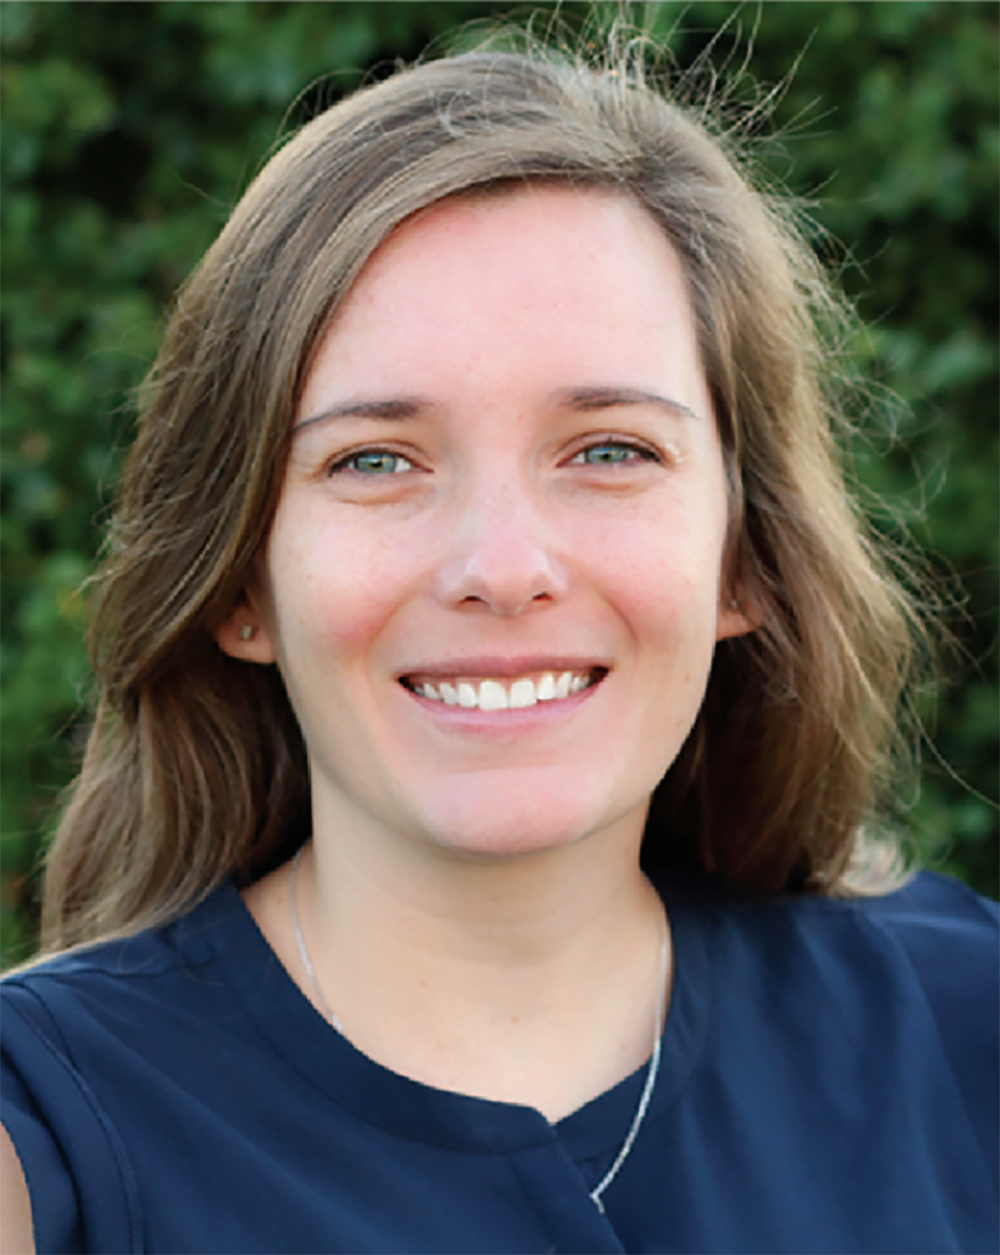 Cara Wolf, CNM, MSN, LCCE - Cara joined Regional Midwifery in 2015. Prior to this, she worked as a labor and delivery nurse in Anchorage, Alaska. She is from Monroe, NC.Cara obtained her BS in nursing from Carolinas College of Health Sciences in Charlotte, NC and BSN at the University of Alaska Anchorage. Her Nurse-Midwifery education was completed through the University of Cincinnati while training under nurse midwives in Anchorage.Cara is committed to supporting and education women as well as providing individualized care. She loves to welcome new patients to the practice for well woman, family planning and pregnancy. She is a Lamaze Certified Childbirth Educator, Centering Pregnancy facilitator and has specialized training in breastfeeding.